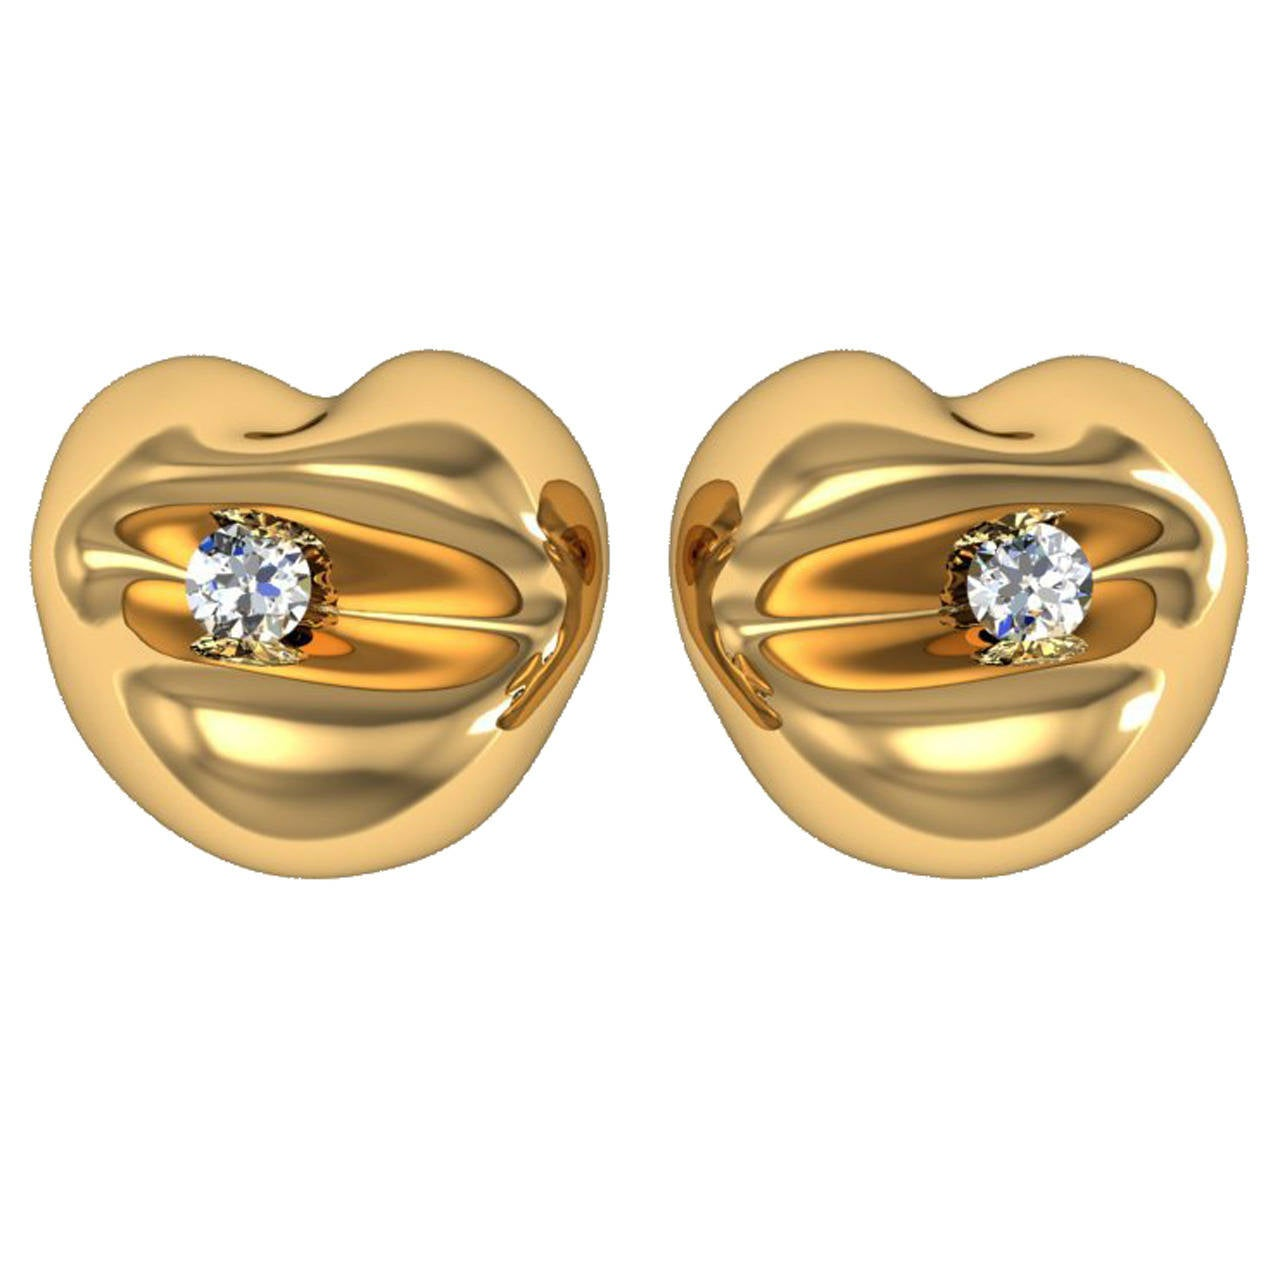 Barbara Nanning & Sparkles Diamond and Gold Earrings For Sale